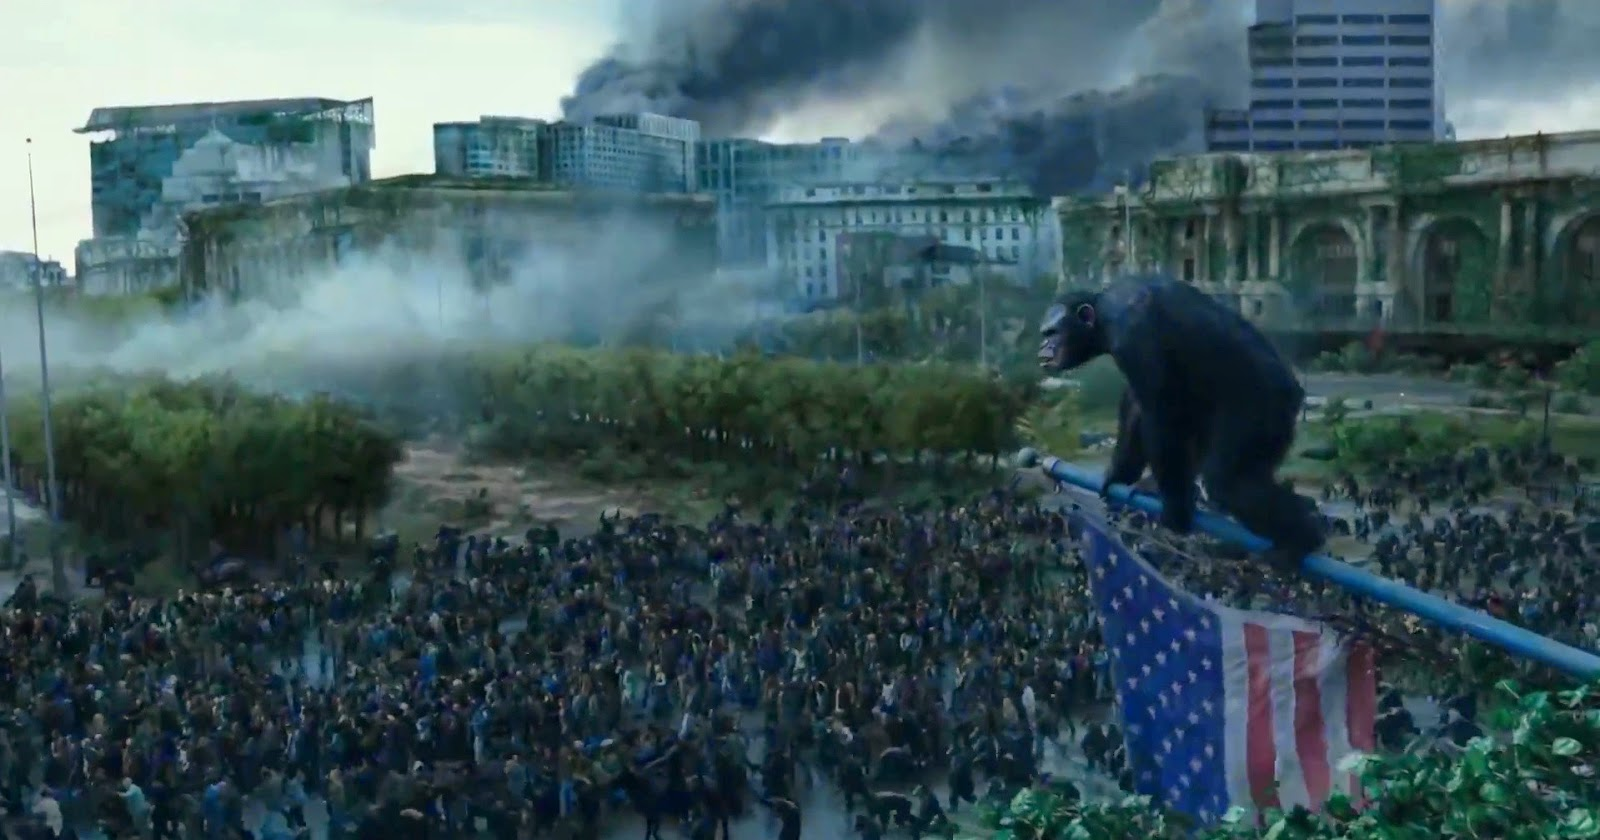 o-dawn-of-the-planet-of-the-apes-trailer-facebook